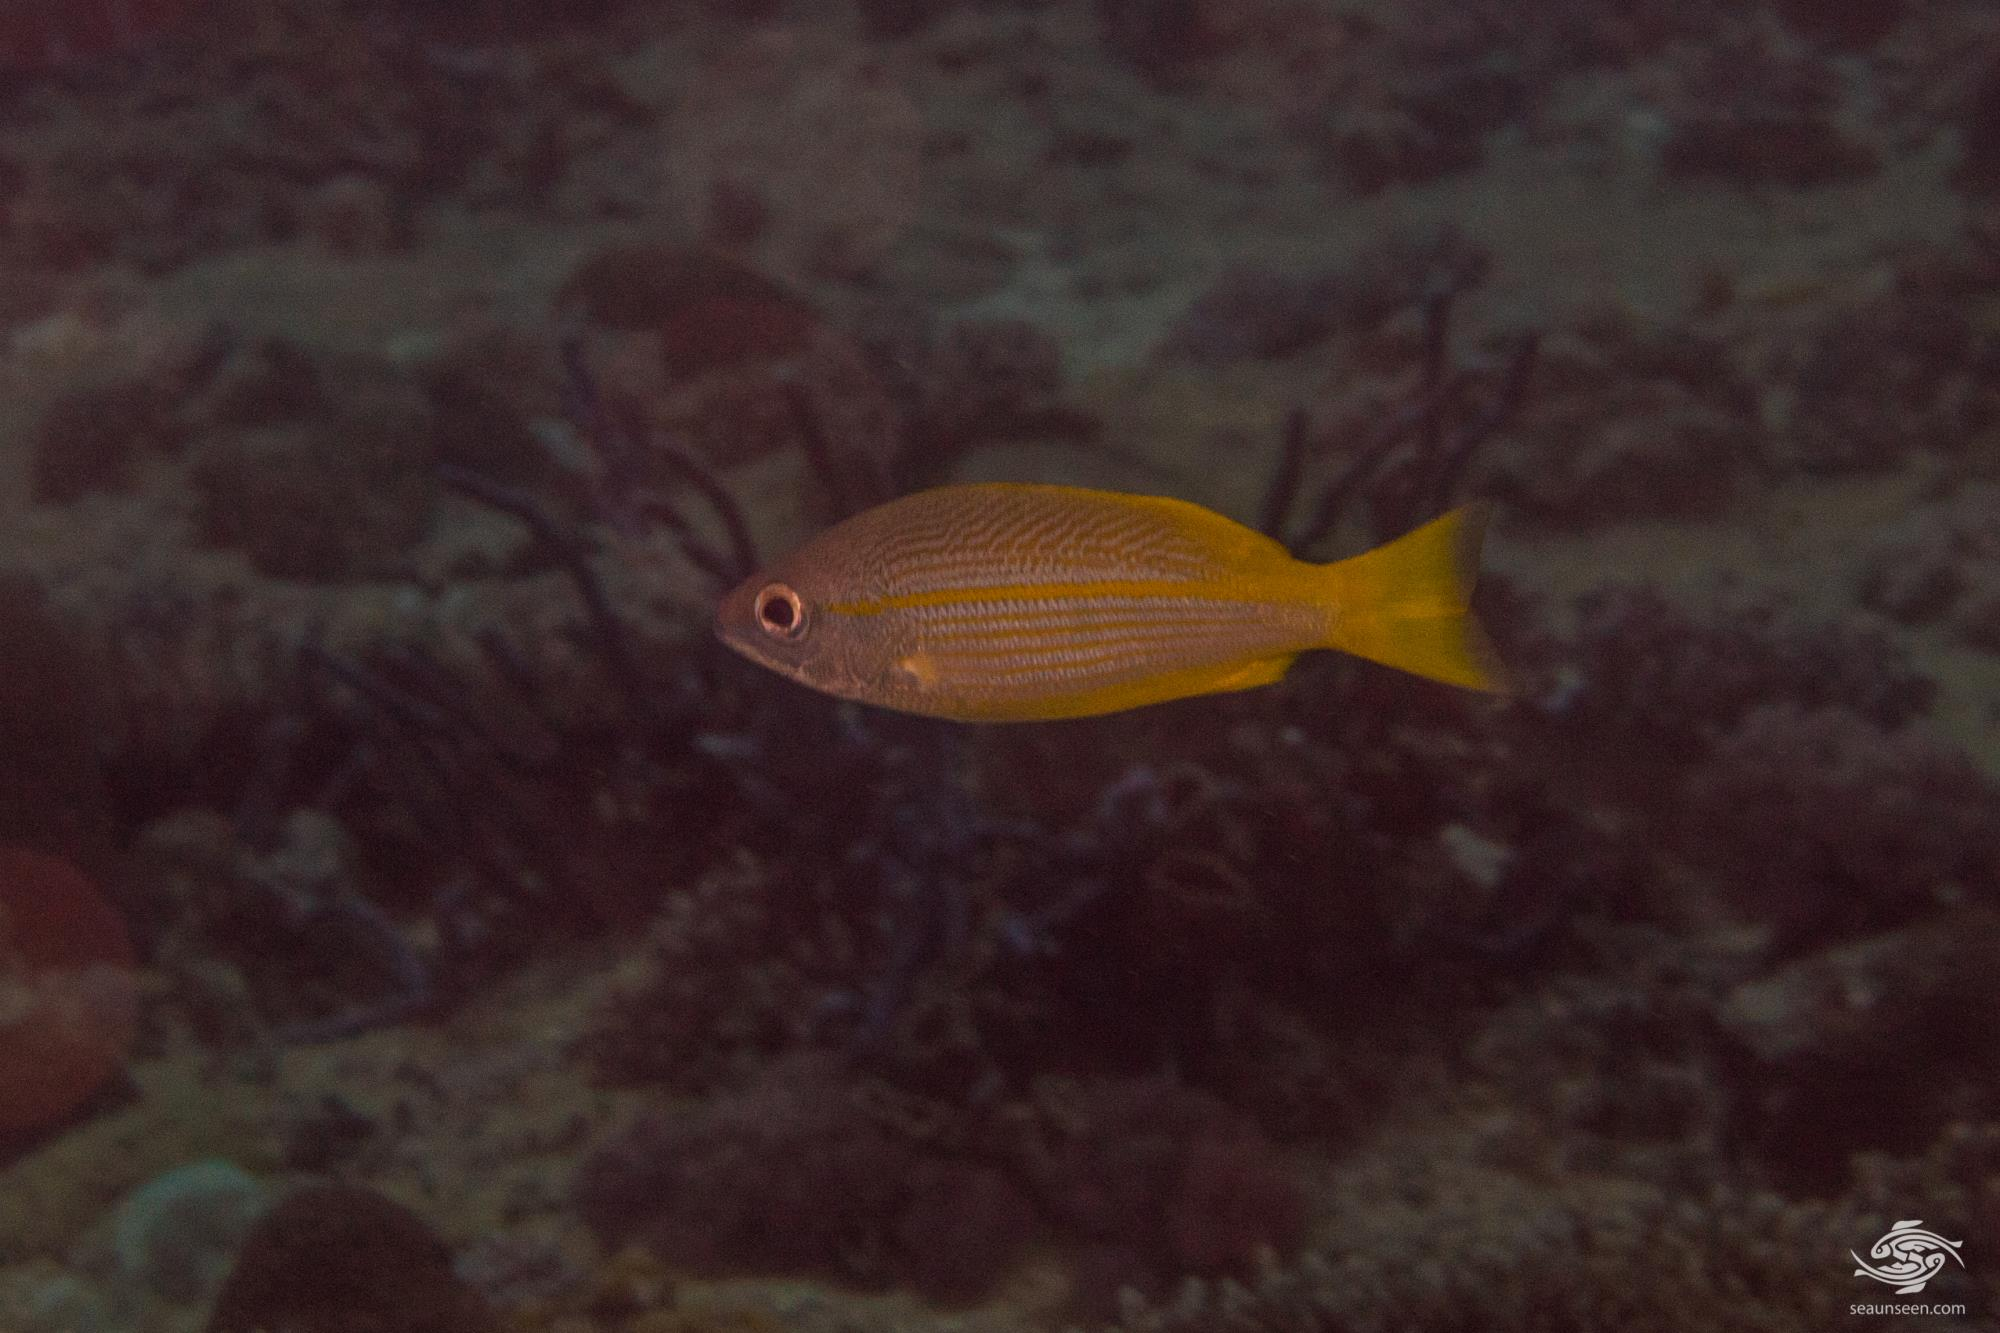 The Bigeye Snapper, Lutjanus lutjanus is also kmown as the Bigeye Seaperch, the Golden Striped Snapper, the Red Sea Lined Snapper,and the Yellow Snapper